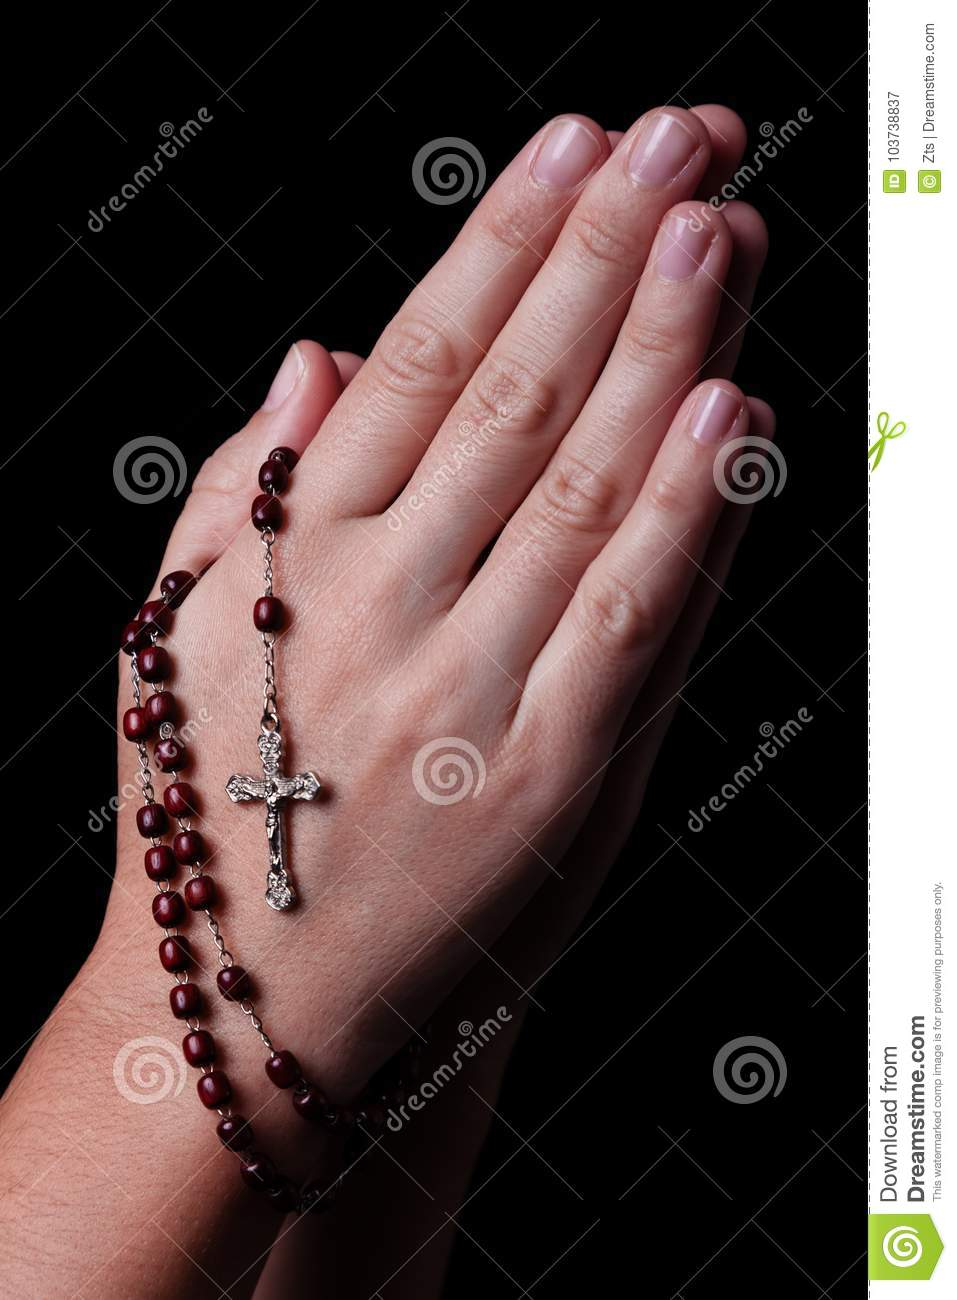 46a31d6a7 Royalty-Free Stock Photo. Female hands praying holding a rosary with Jesus  Christ in the cross or Crucifix on black